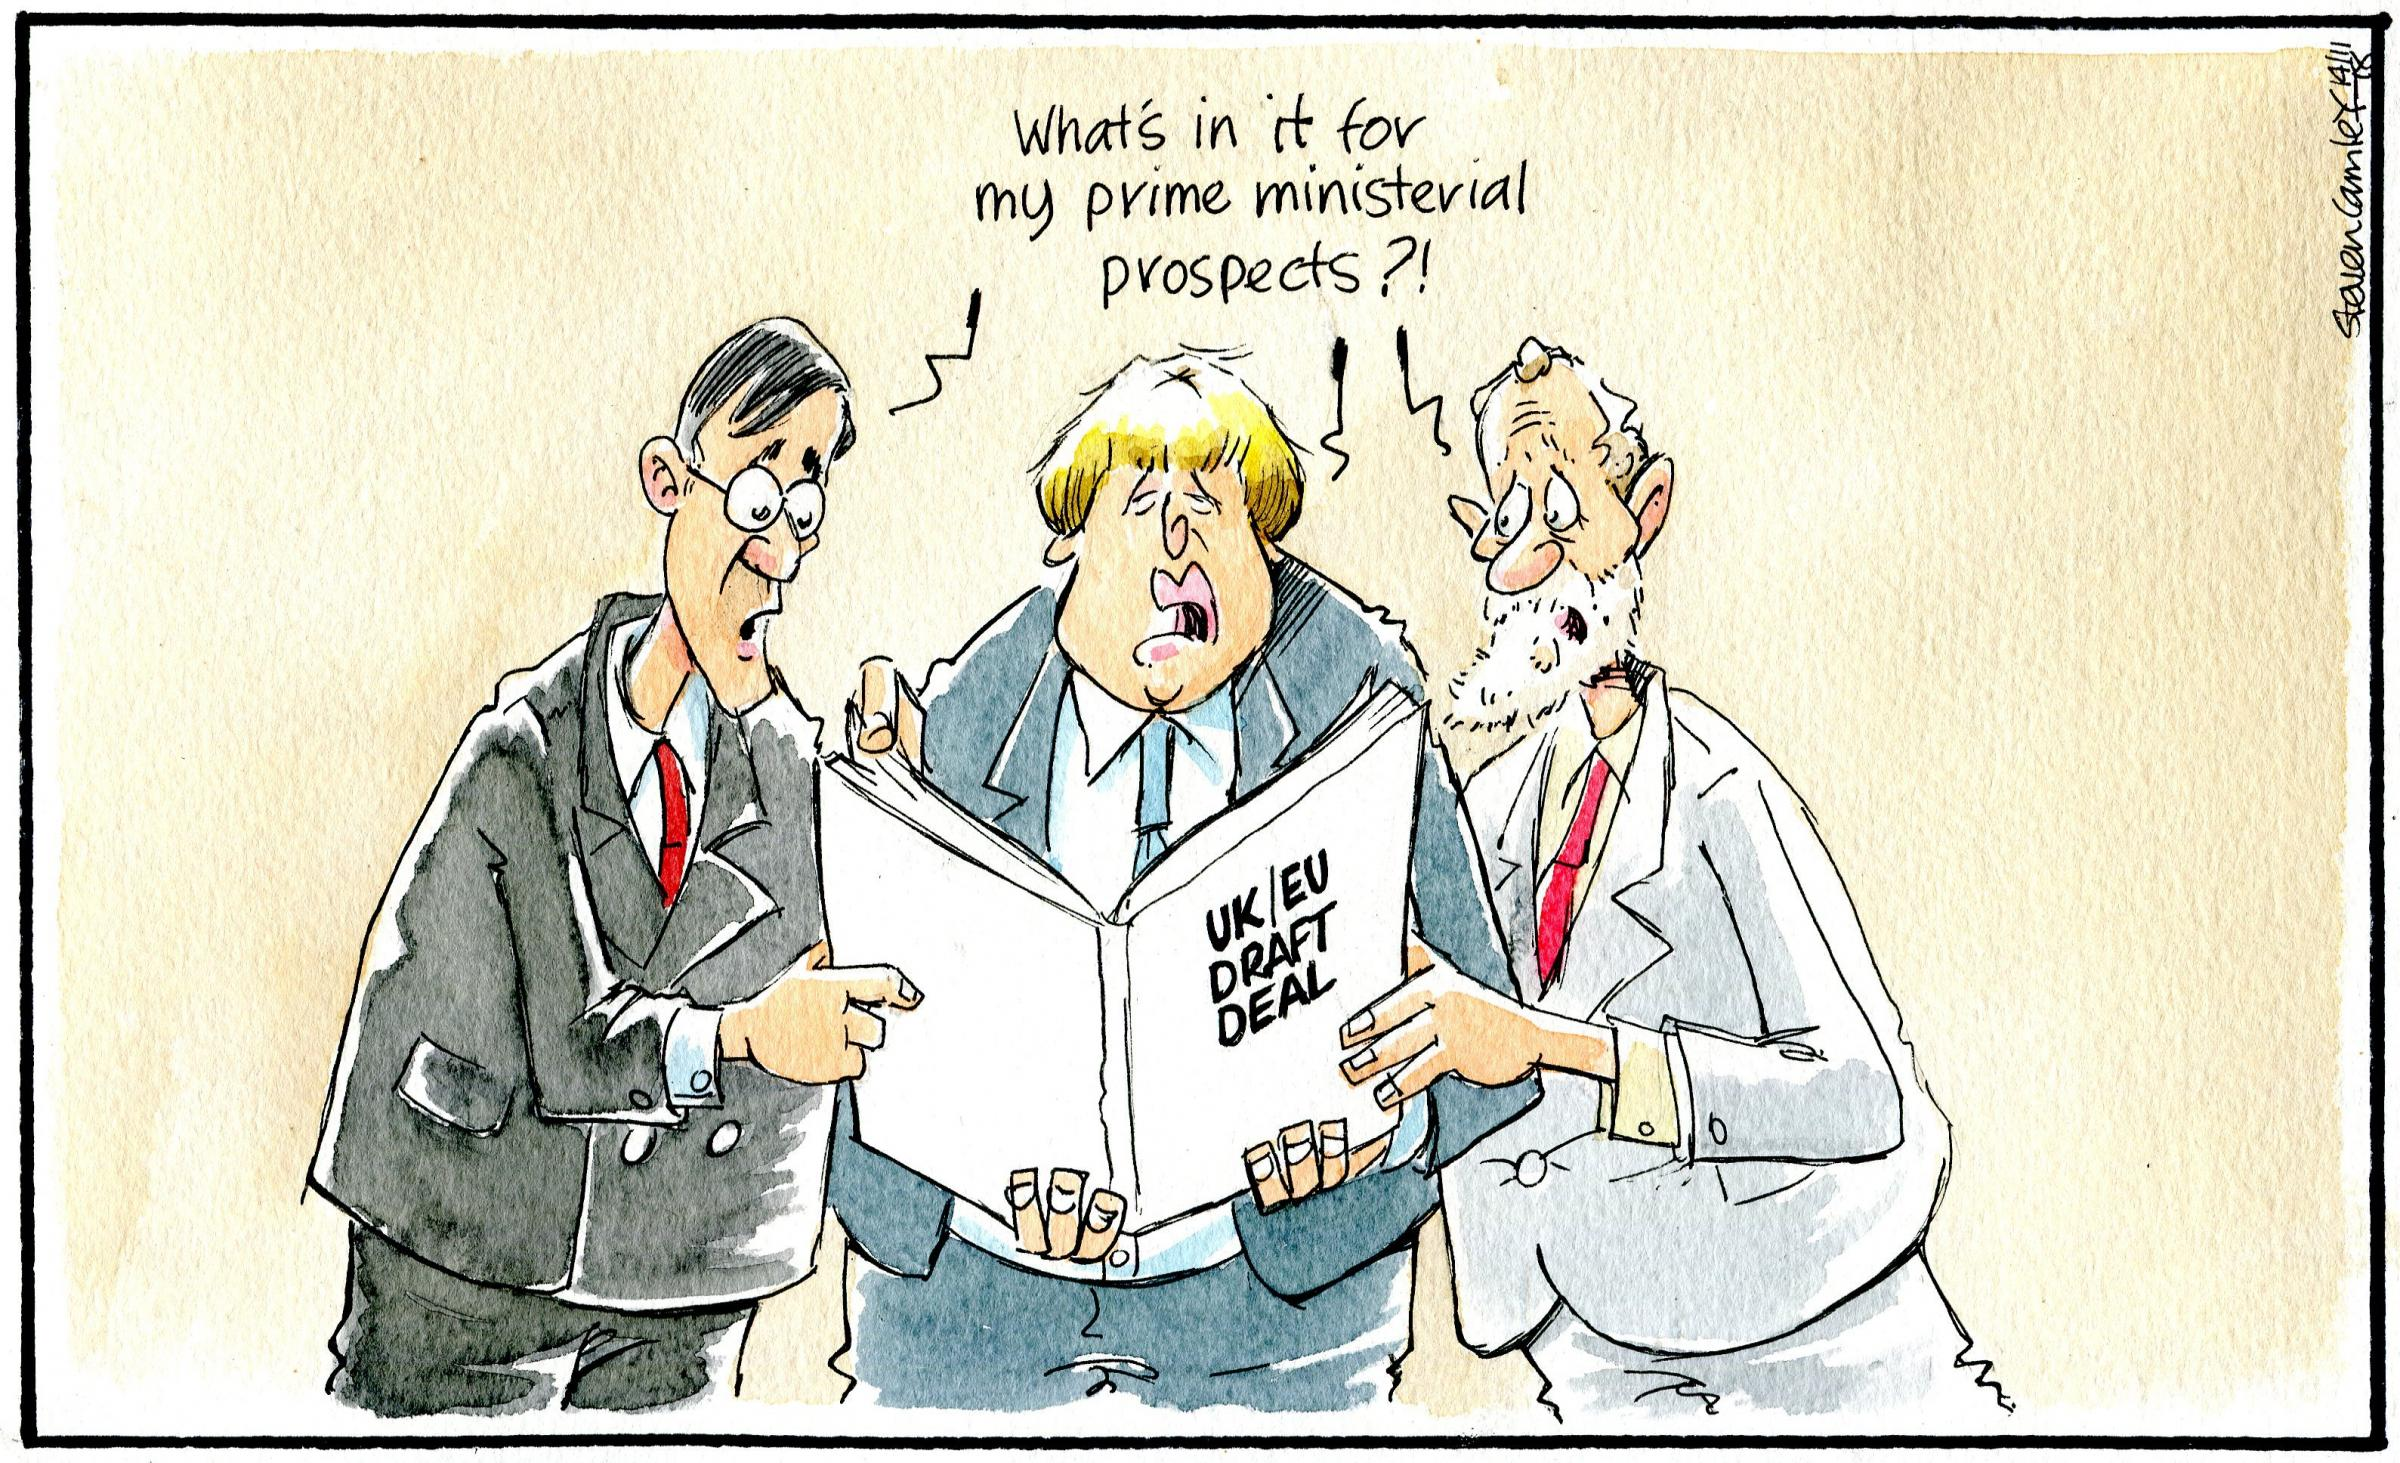 Camley's cartoon